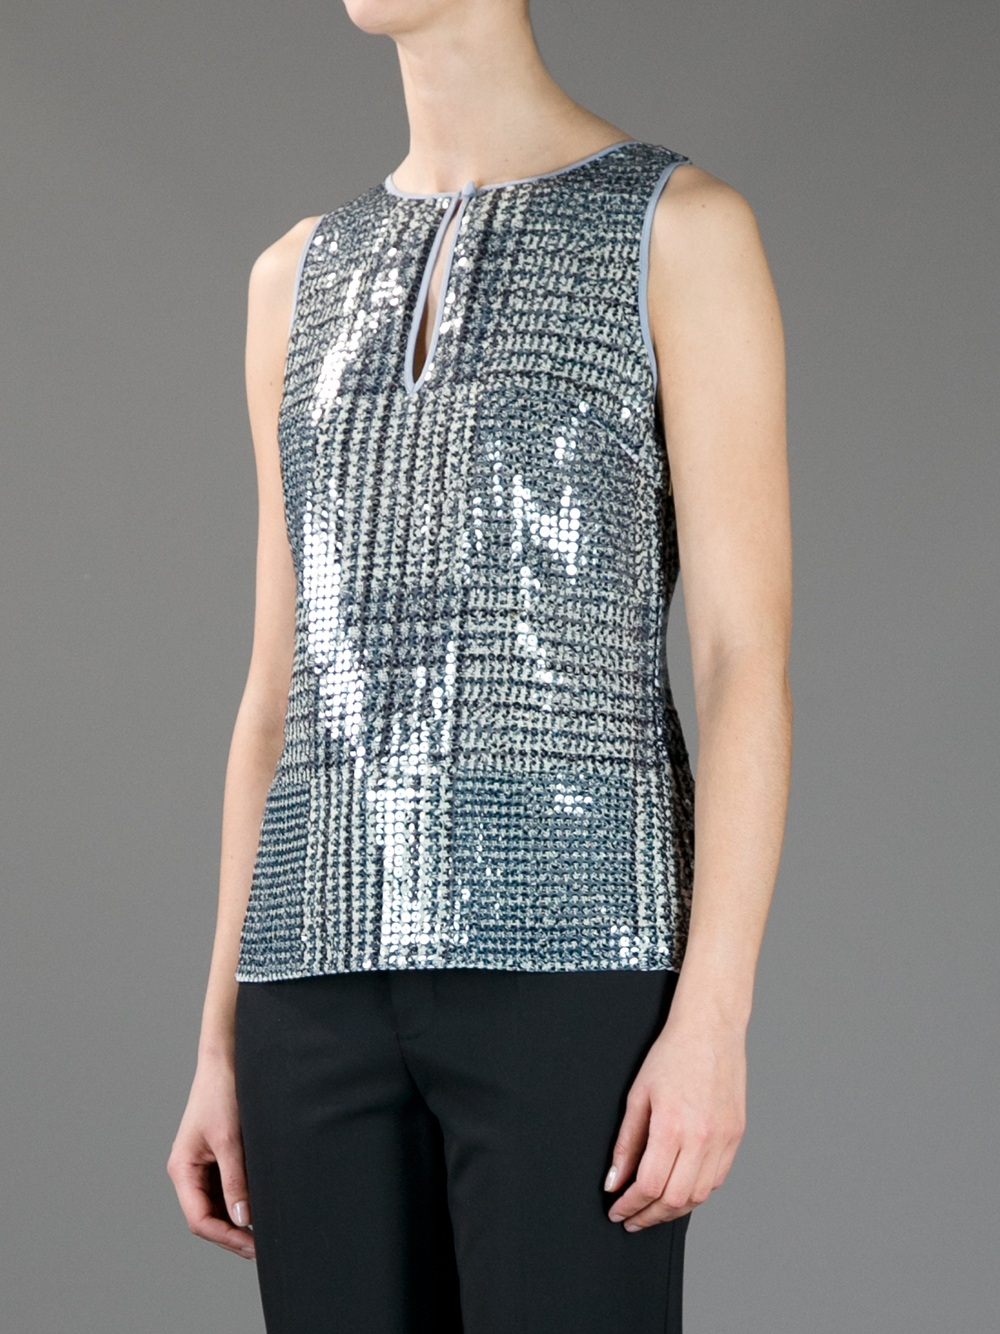 Tory burch checked sequin embellished top in blue lyst for Tory burch fashion island